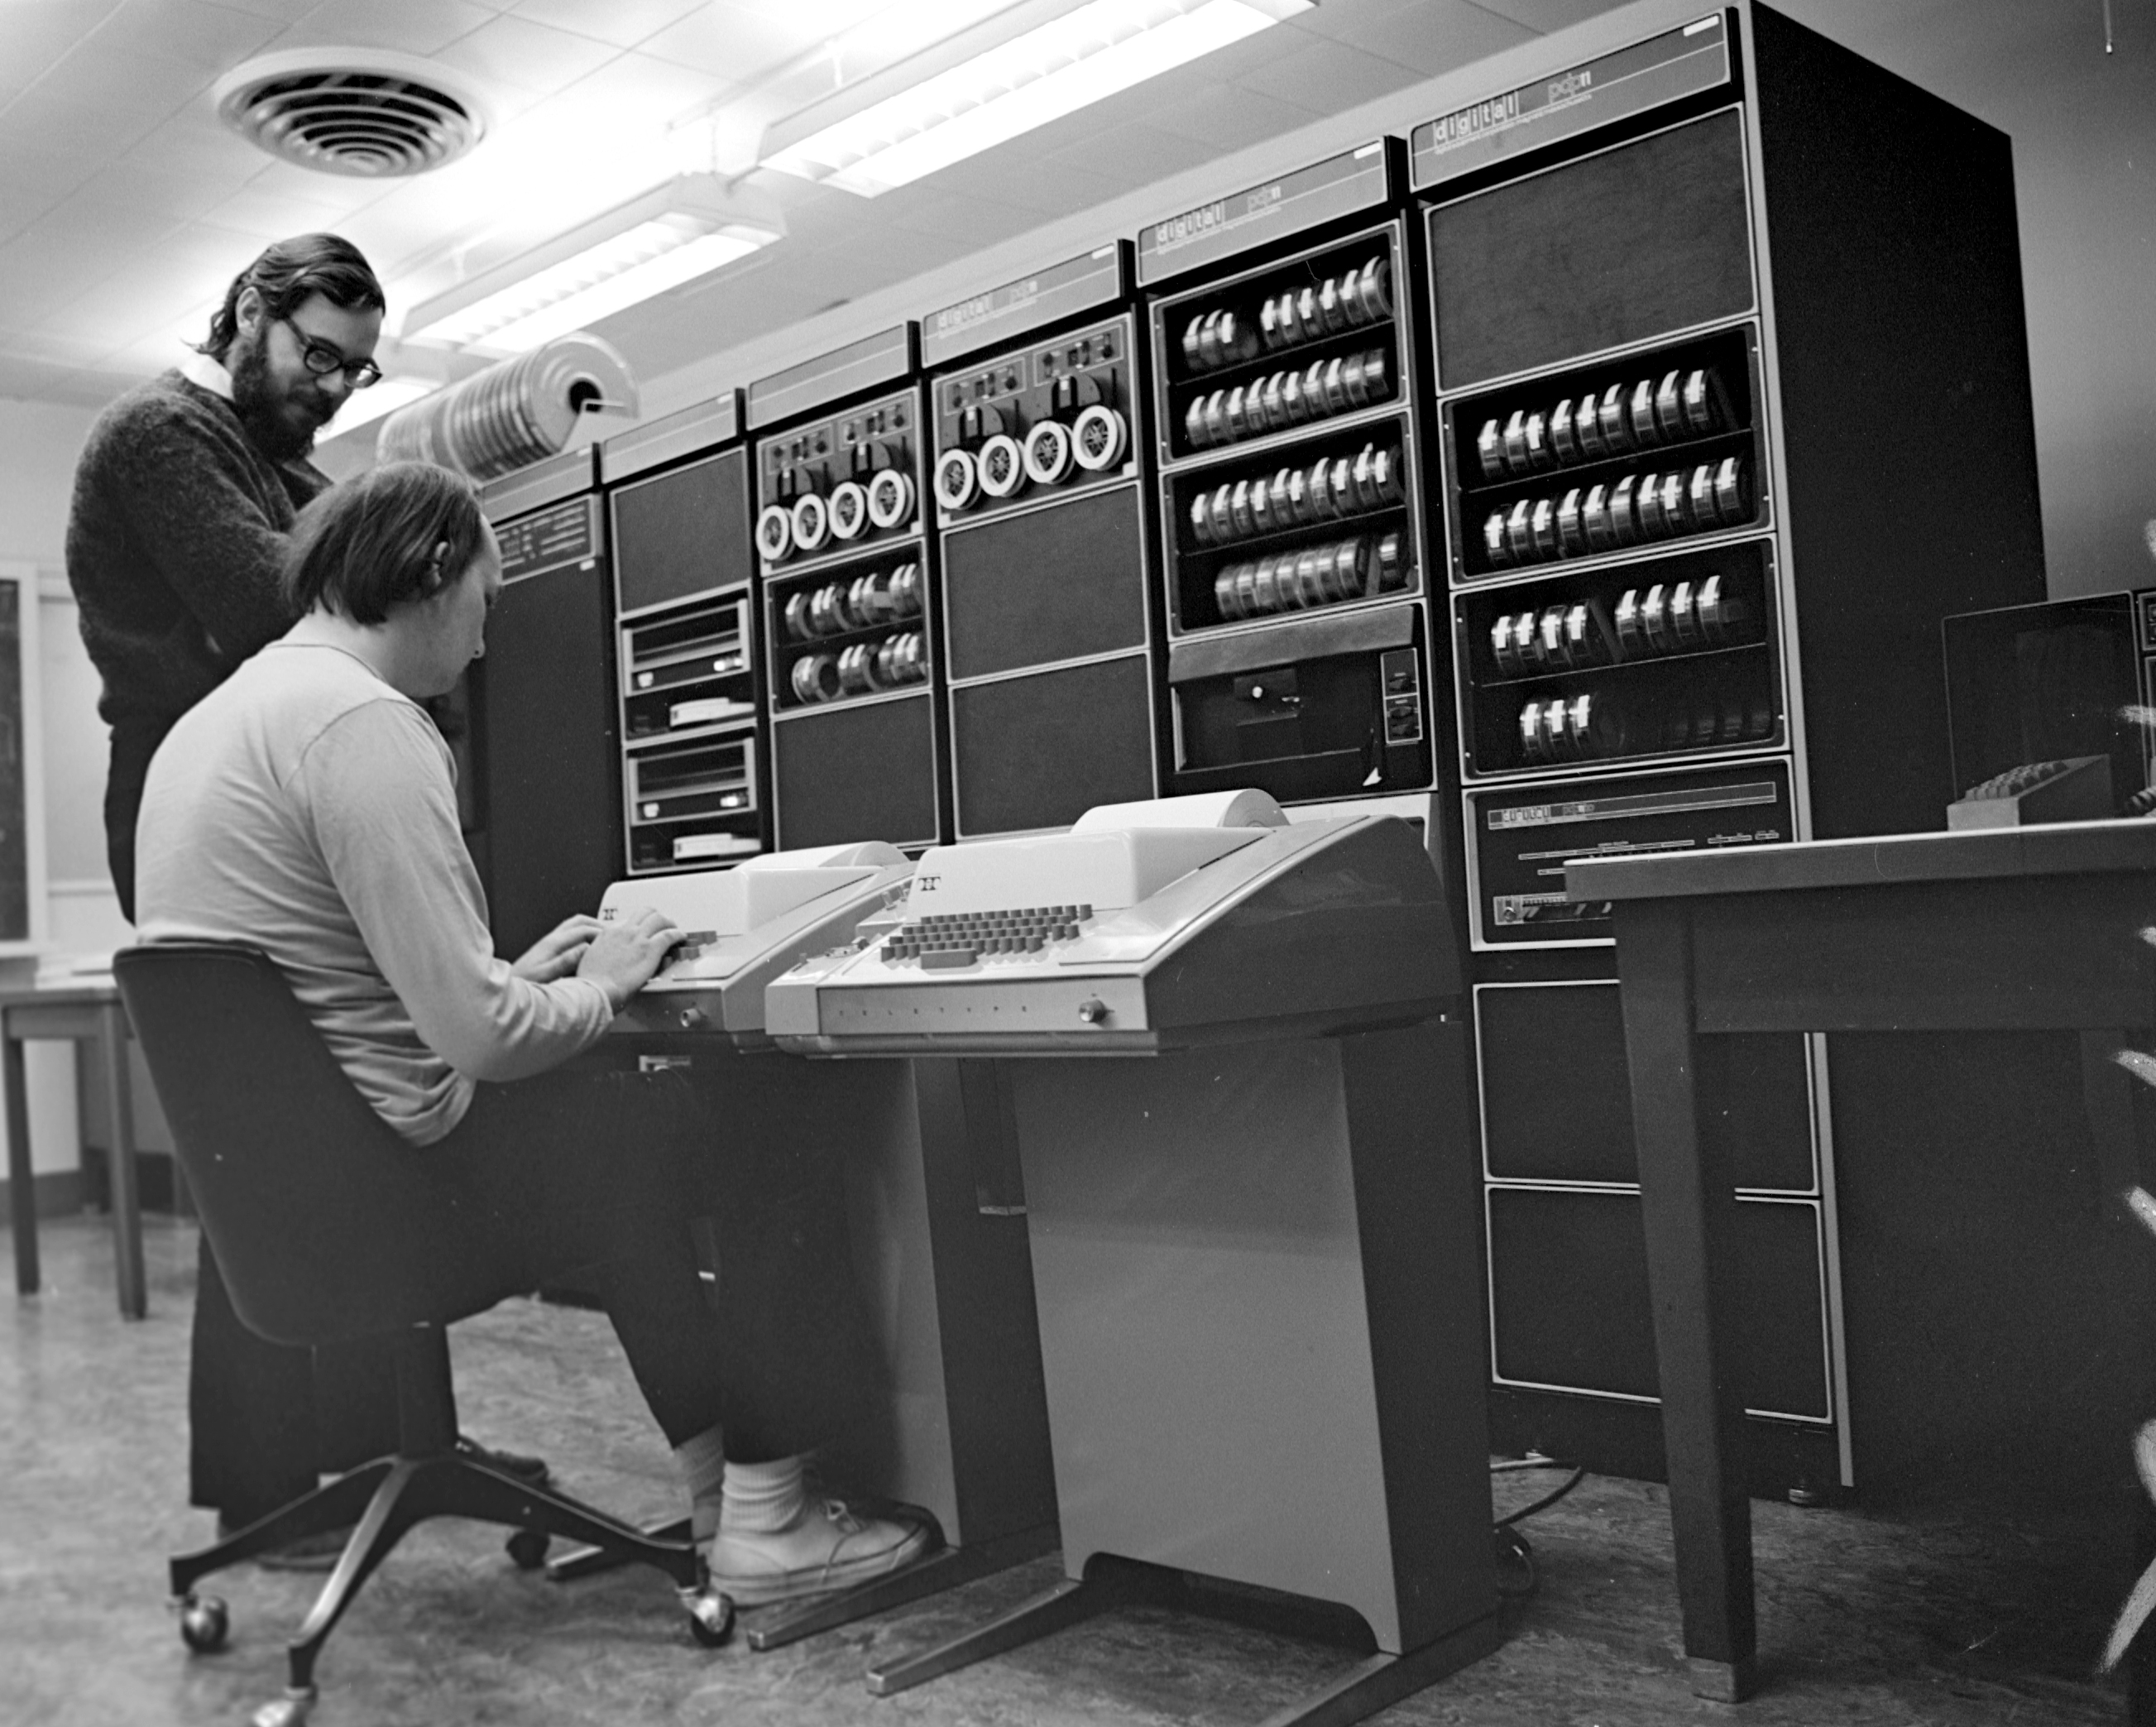 Ken_Thompson_-sitting-and_Dennis_Ritchie_at_PDP-11-2876612463-